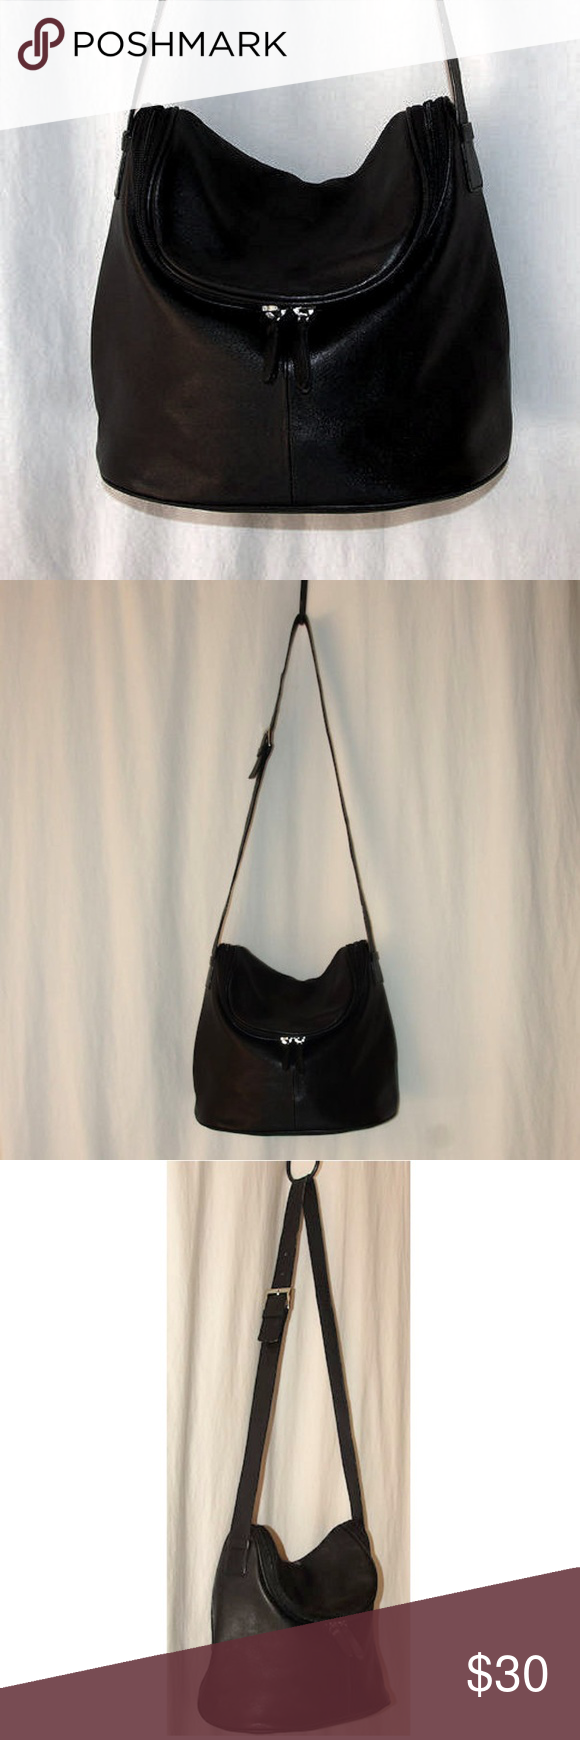 b89d2290e5a3 MAXX New York Black Leather Organizer Shoulder Bag Excellent Pre-Loved  Condition 12